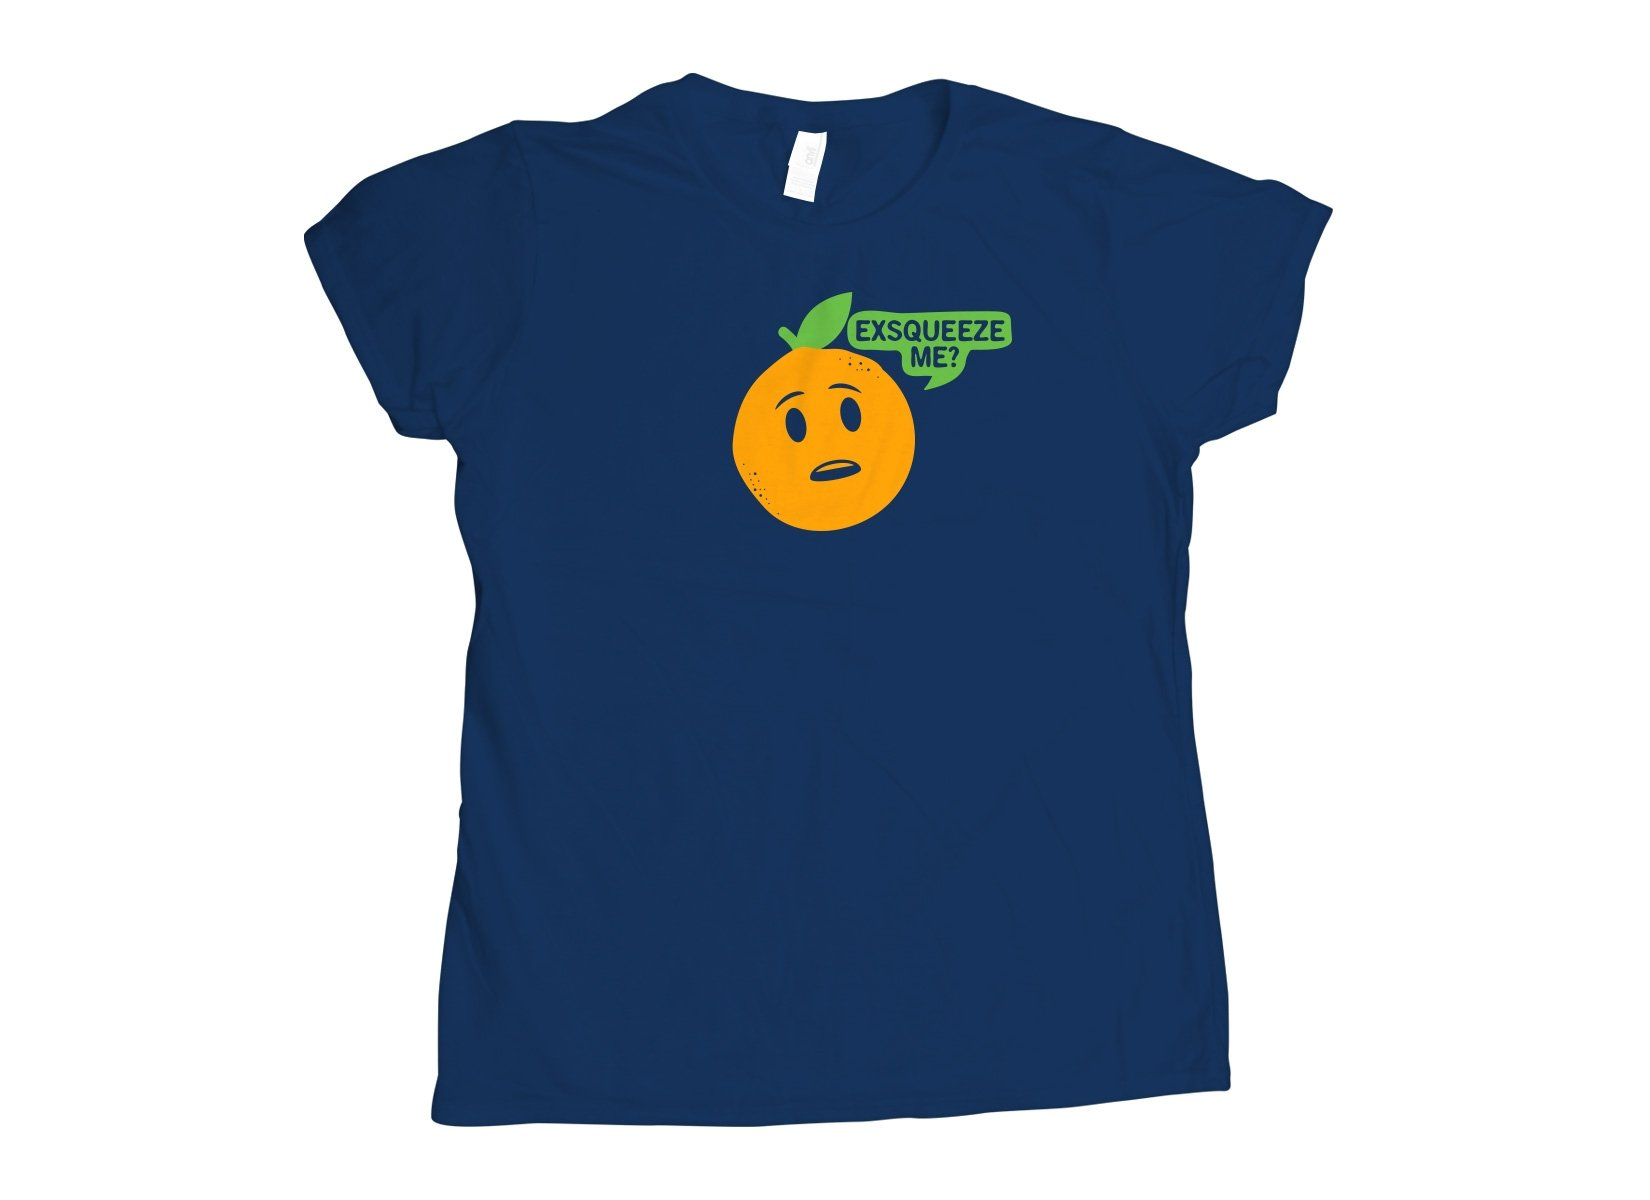 Exsqueeze Me? on Womens T-Shirt